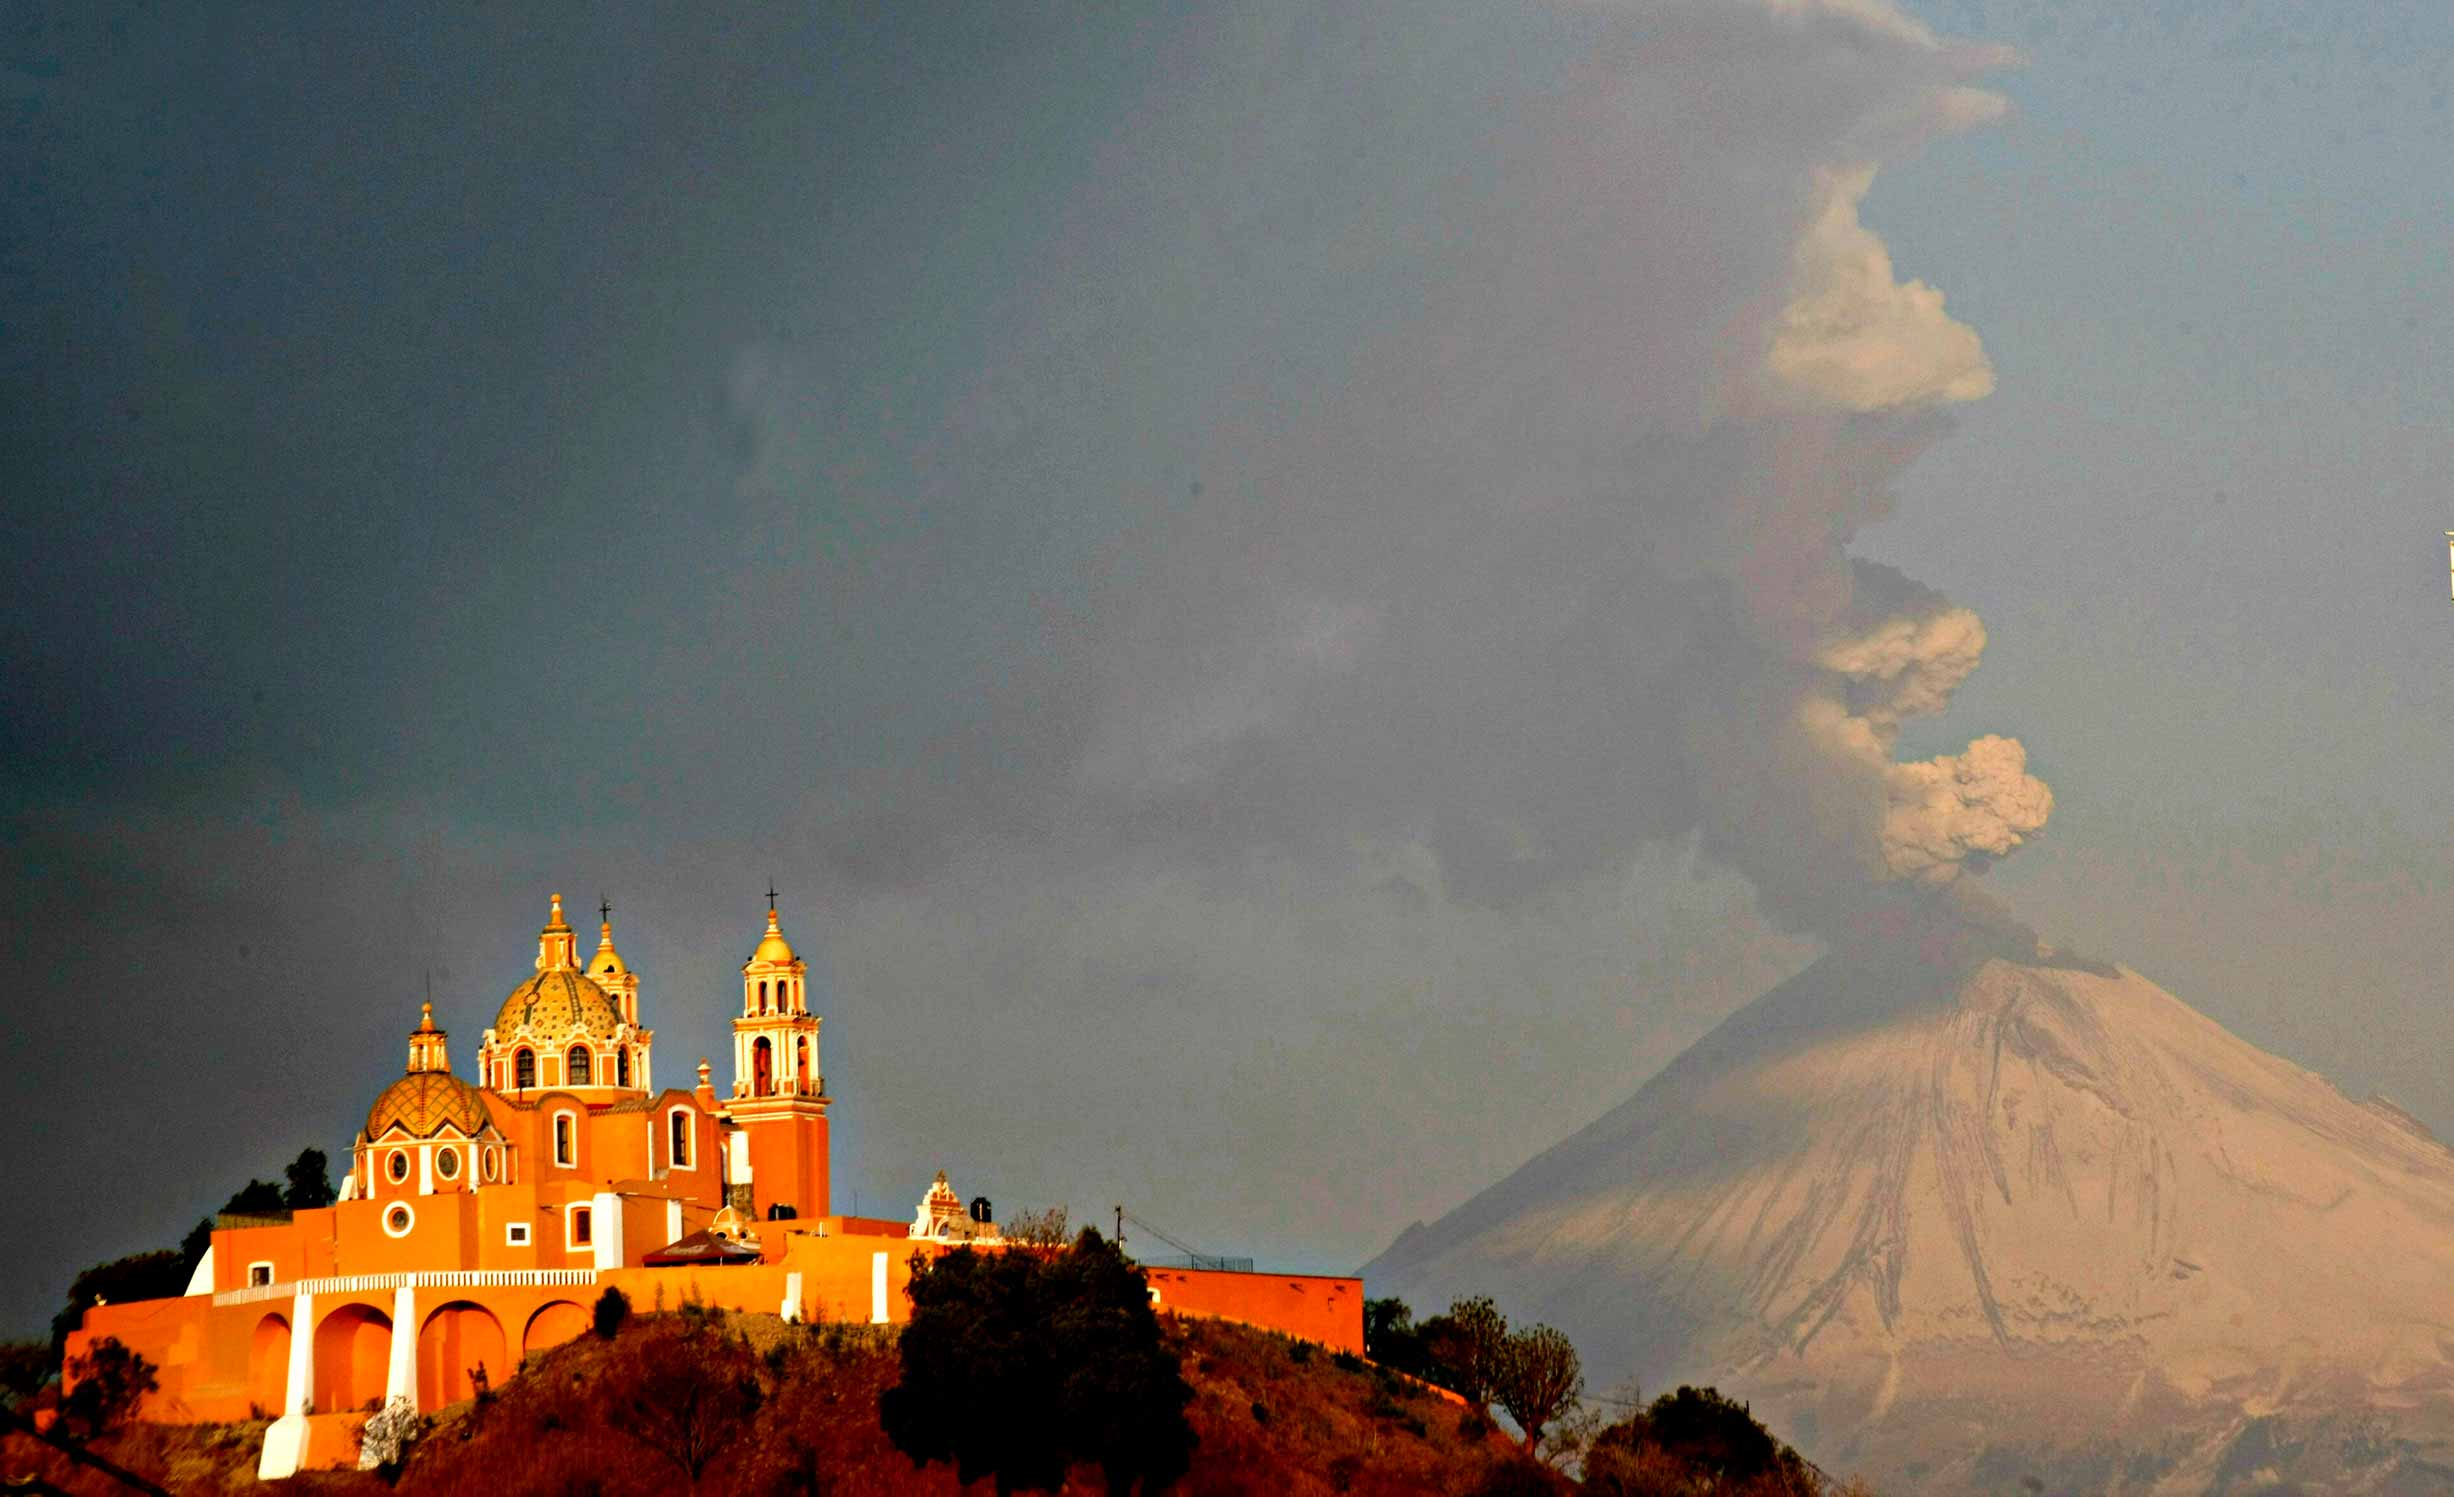 Cholula in Puebla